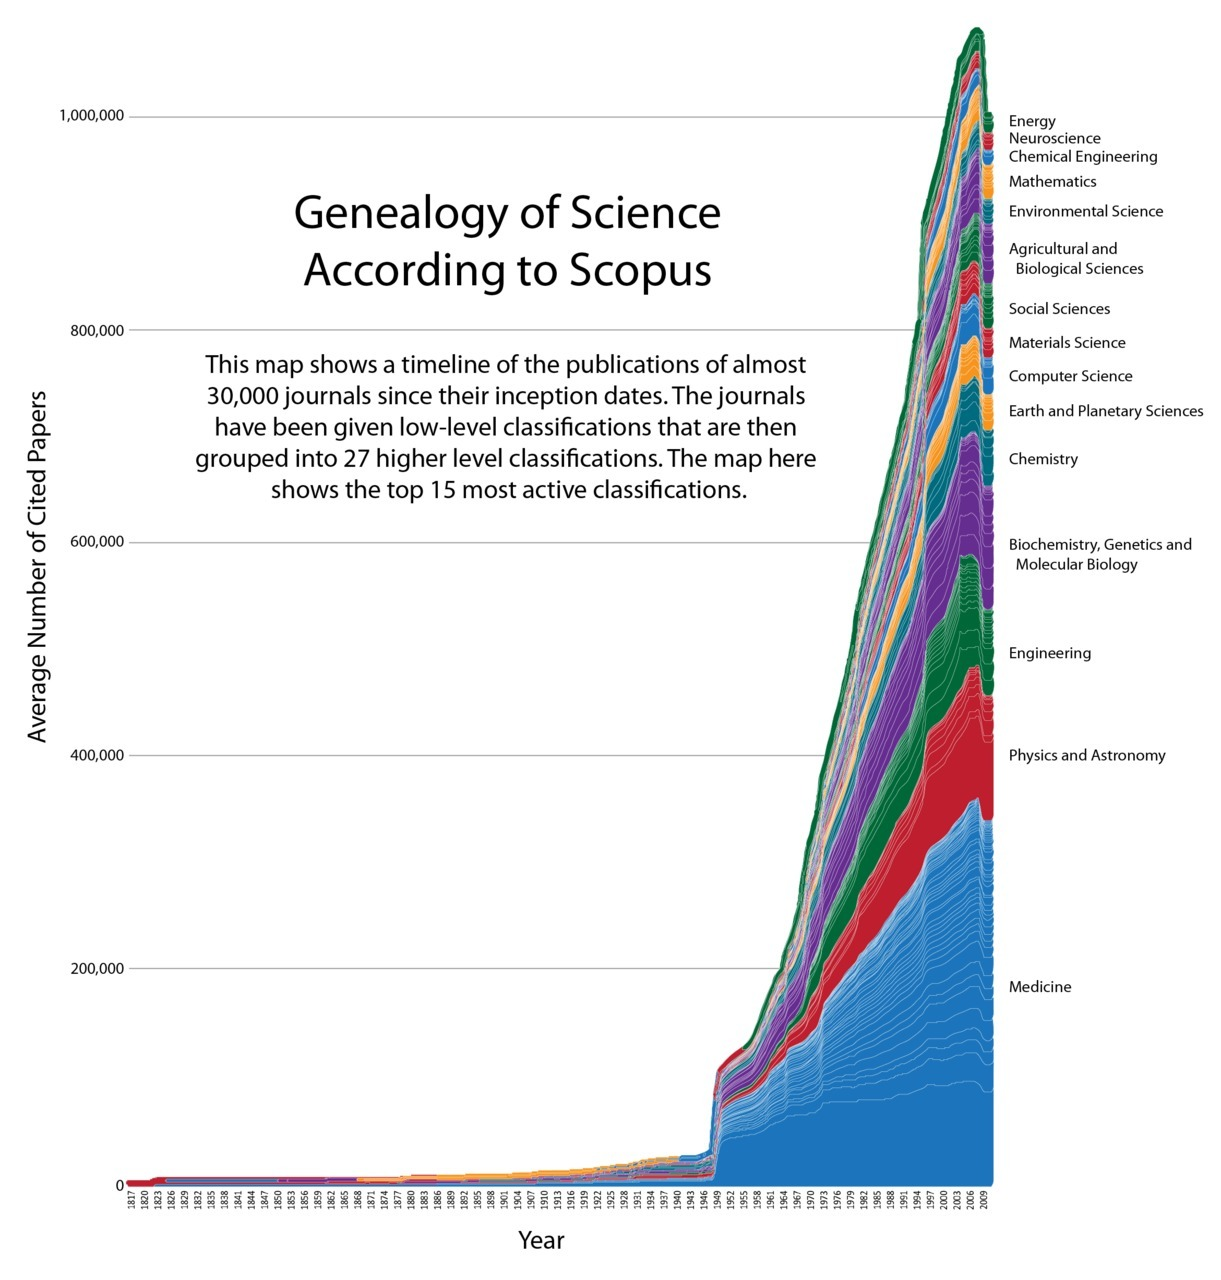 Geneology of science